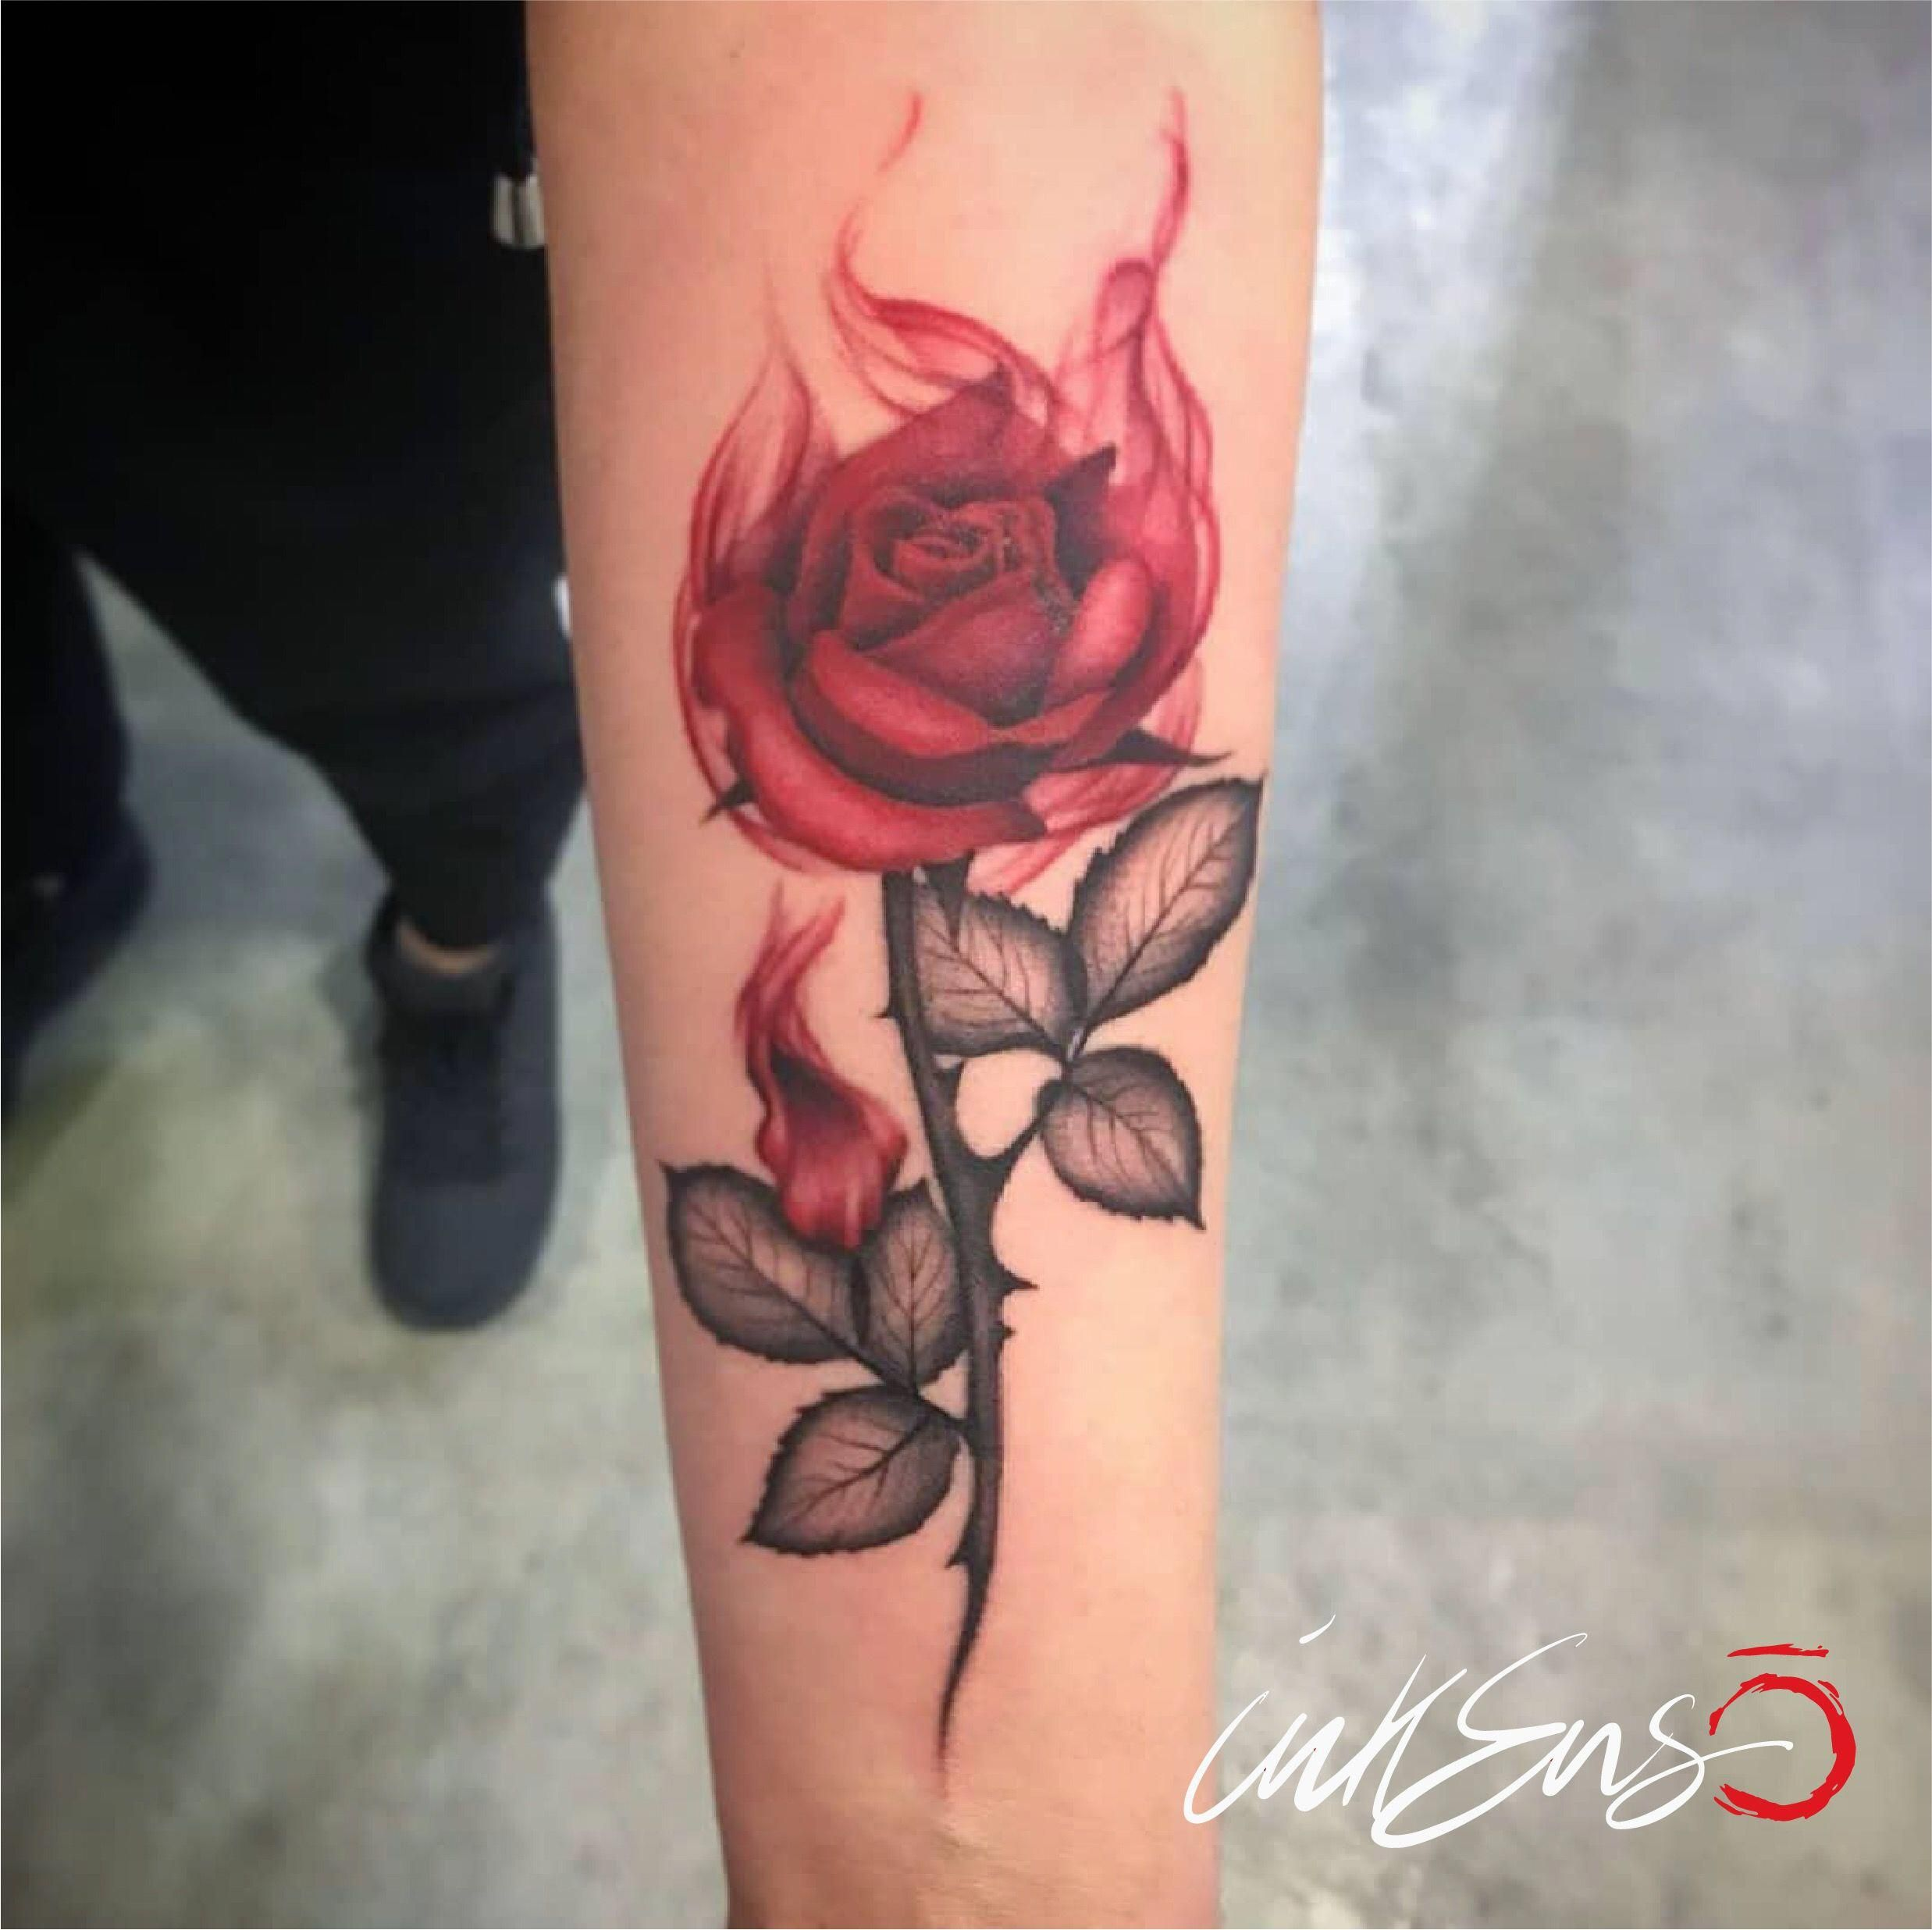 Follow Me On Instagram Ilainktattoo Inkensotattoostudio 1st Prize At Piacenza Tattoo Convention Ila Ink Red R Hand Tattoos Flame Tattoos Red Rose Tattoo